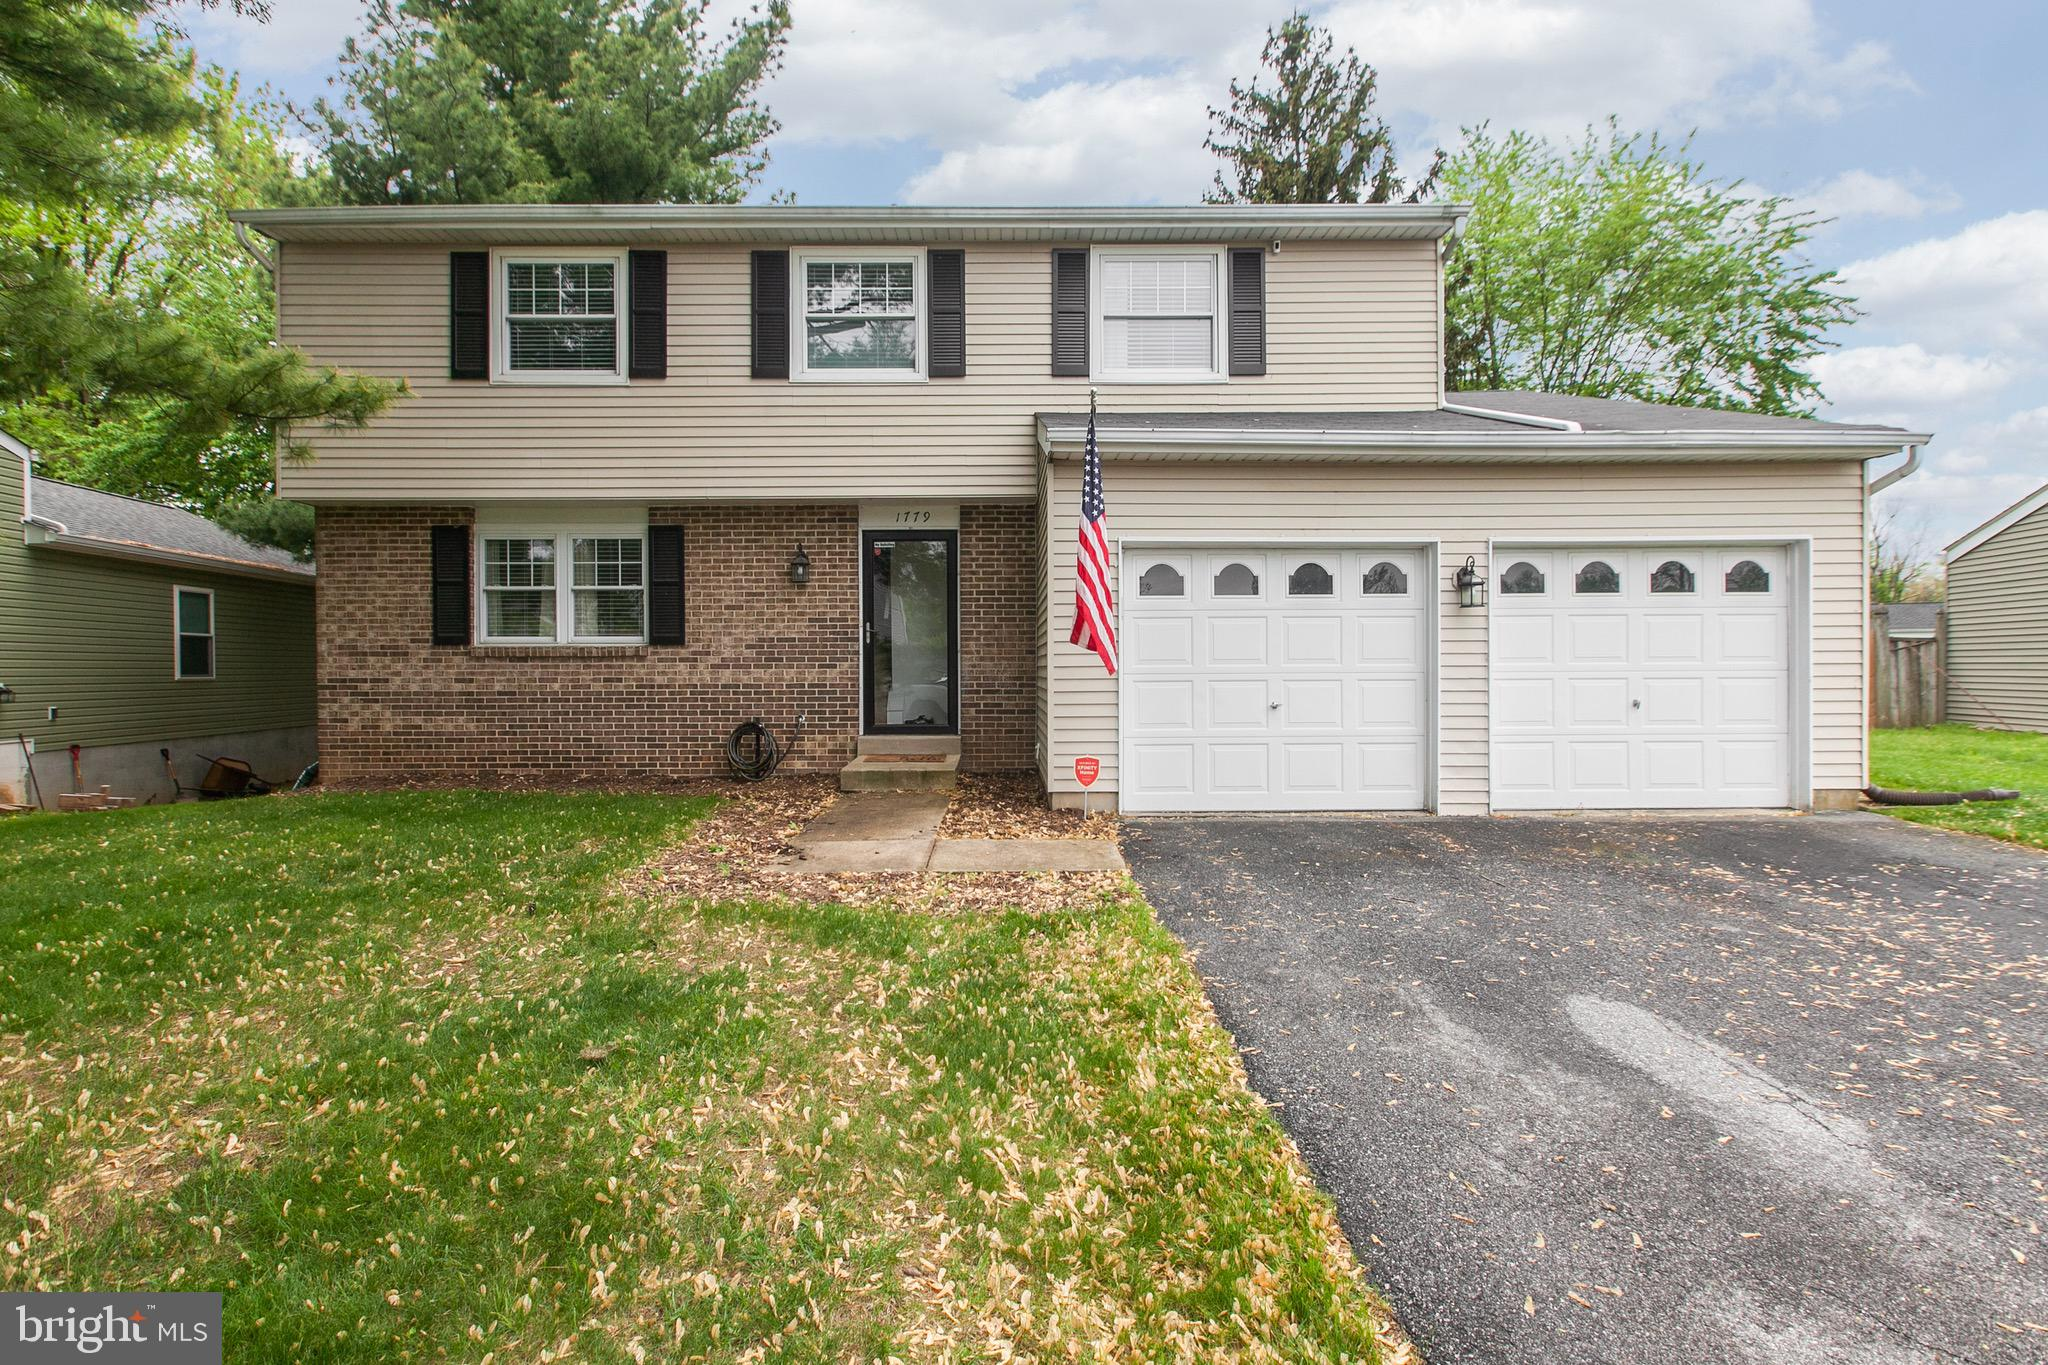 Welcome home, this is the one you've been waiting for.  This bright and airy 4BR/2.5BA home, with a